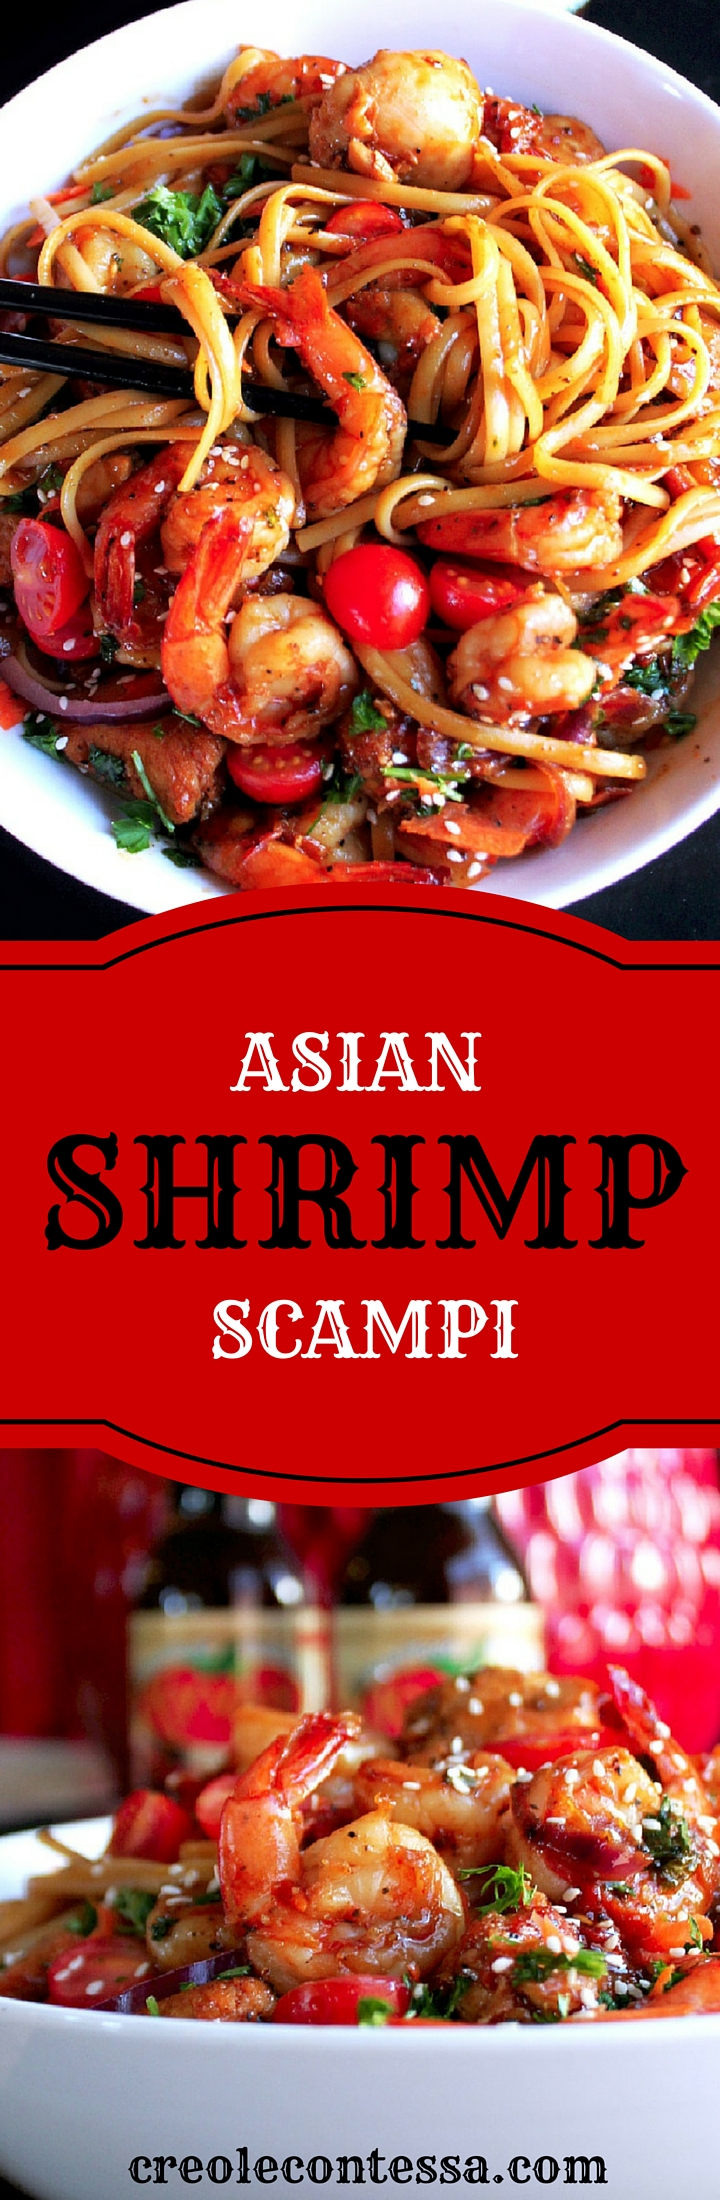 Asian BBQ Shrimp and Chicken Scampi-Creole Contessa